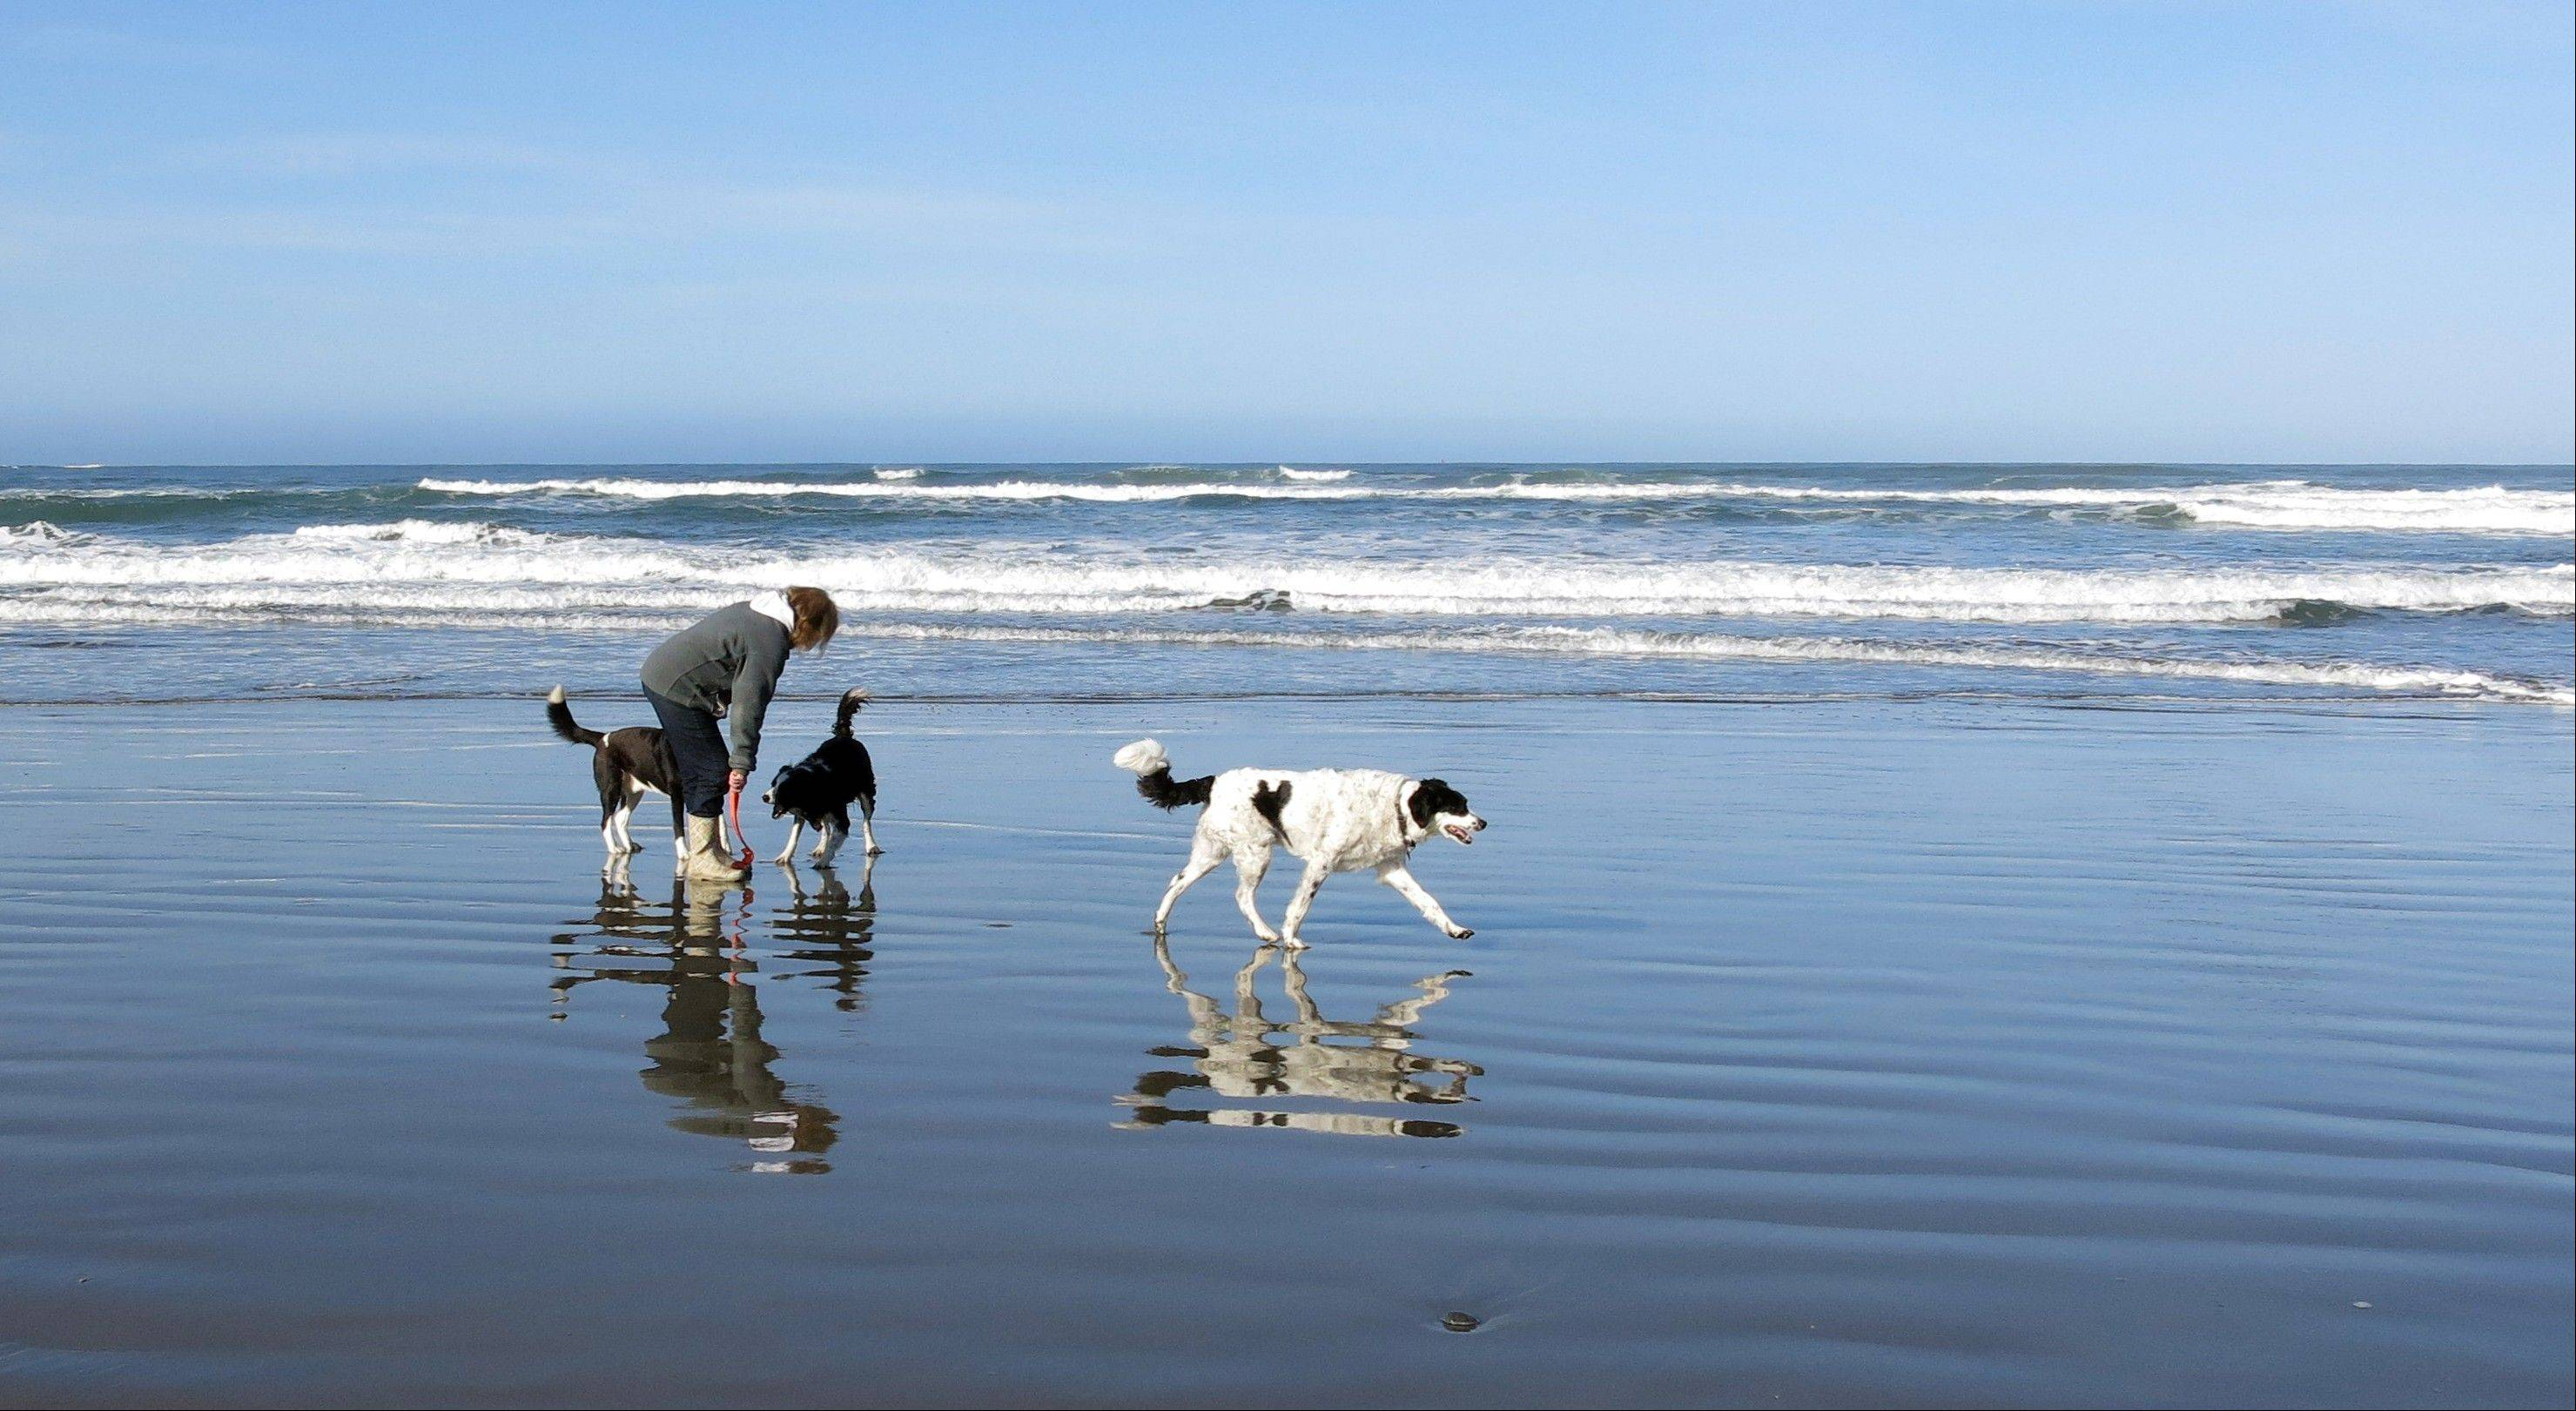 Sue Canfield, and dogs Toby, Pike and Rascal in the surf off the California coastline. Watching as a beloved dog is swept out to sea is heart-wrenching. Doing nothing seems unthinkable. But experts say that is exactly what a dog owner should do.